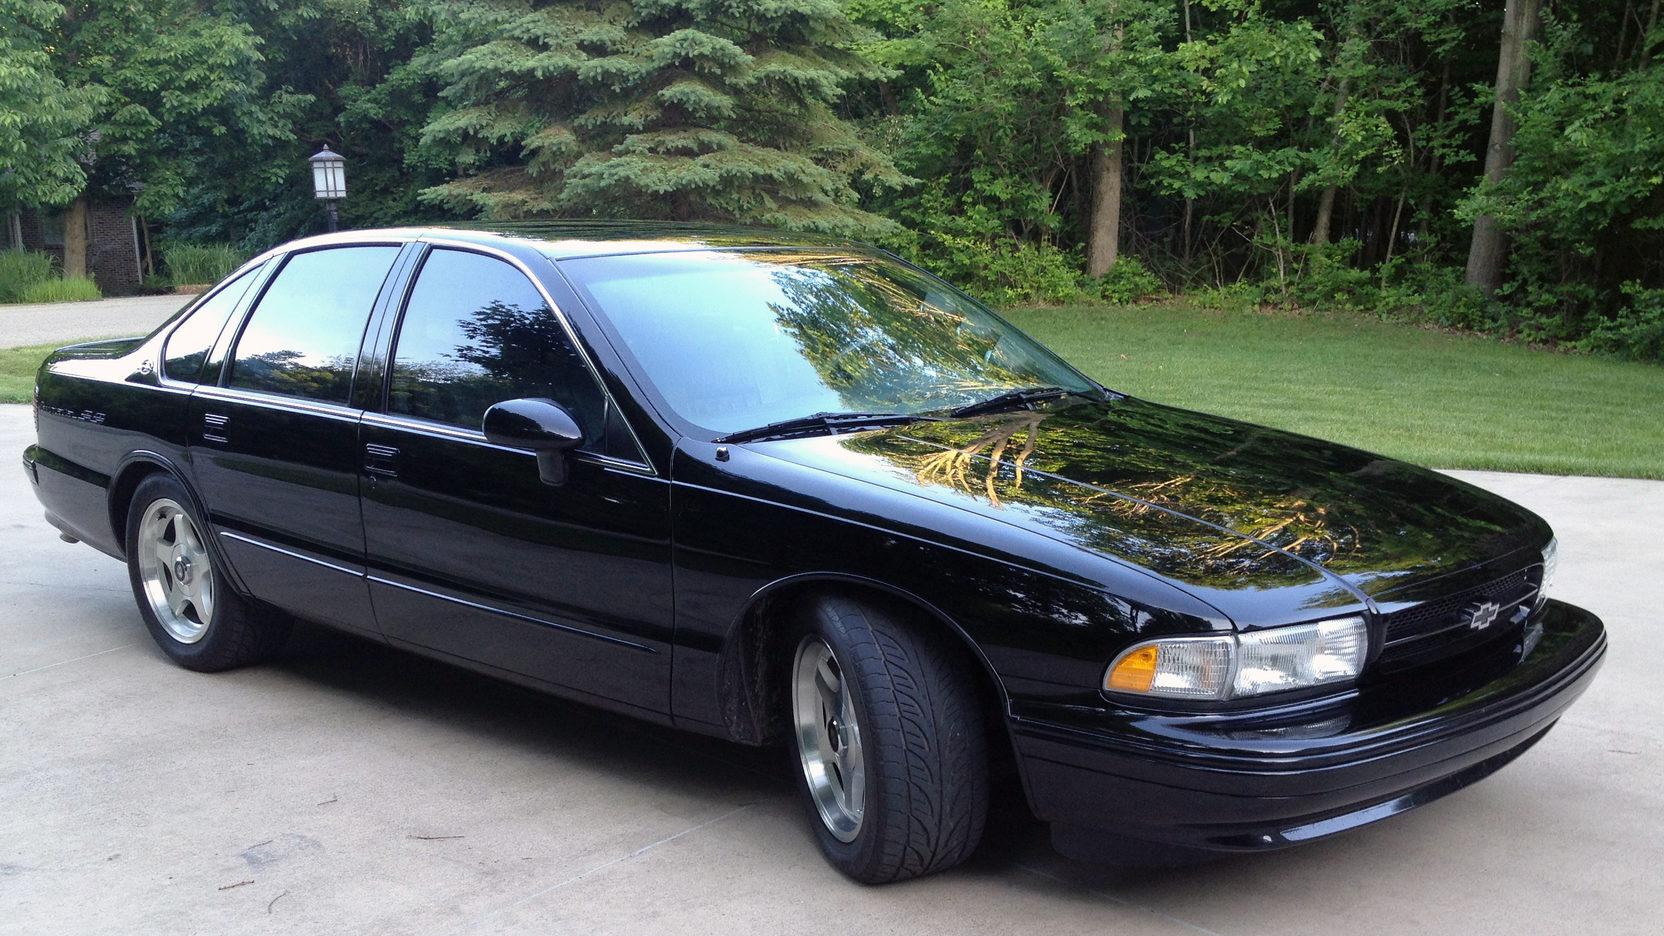 1994 impala ss owners manual